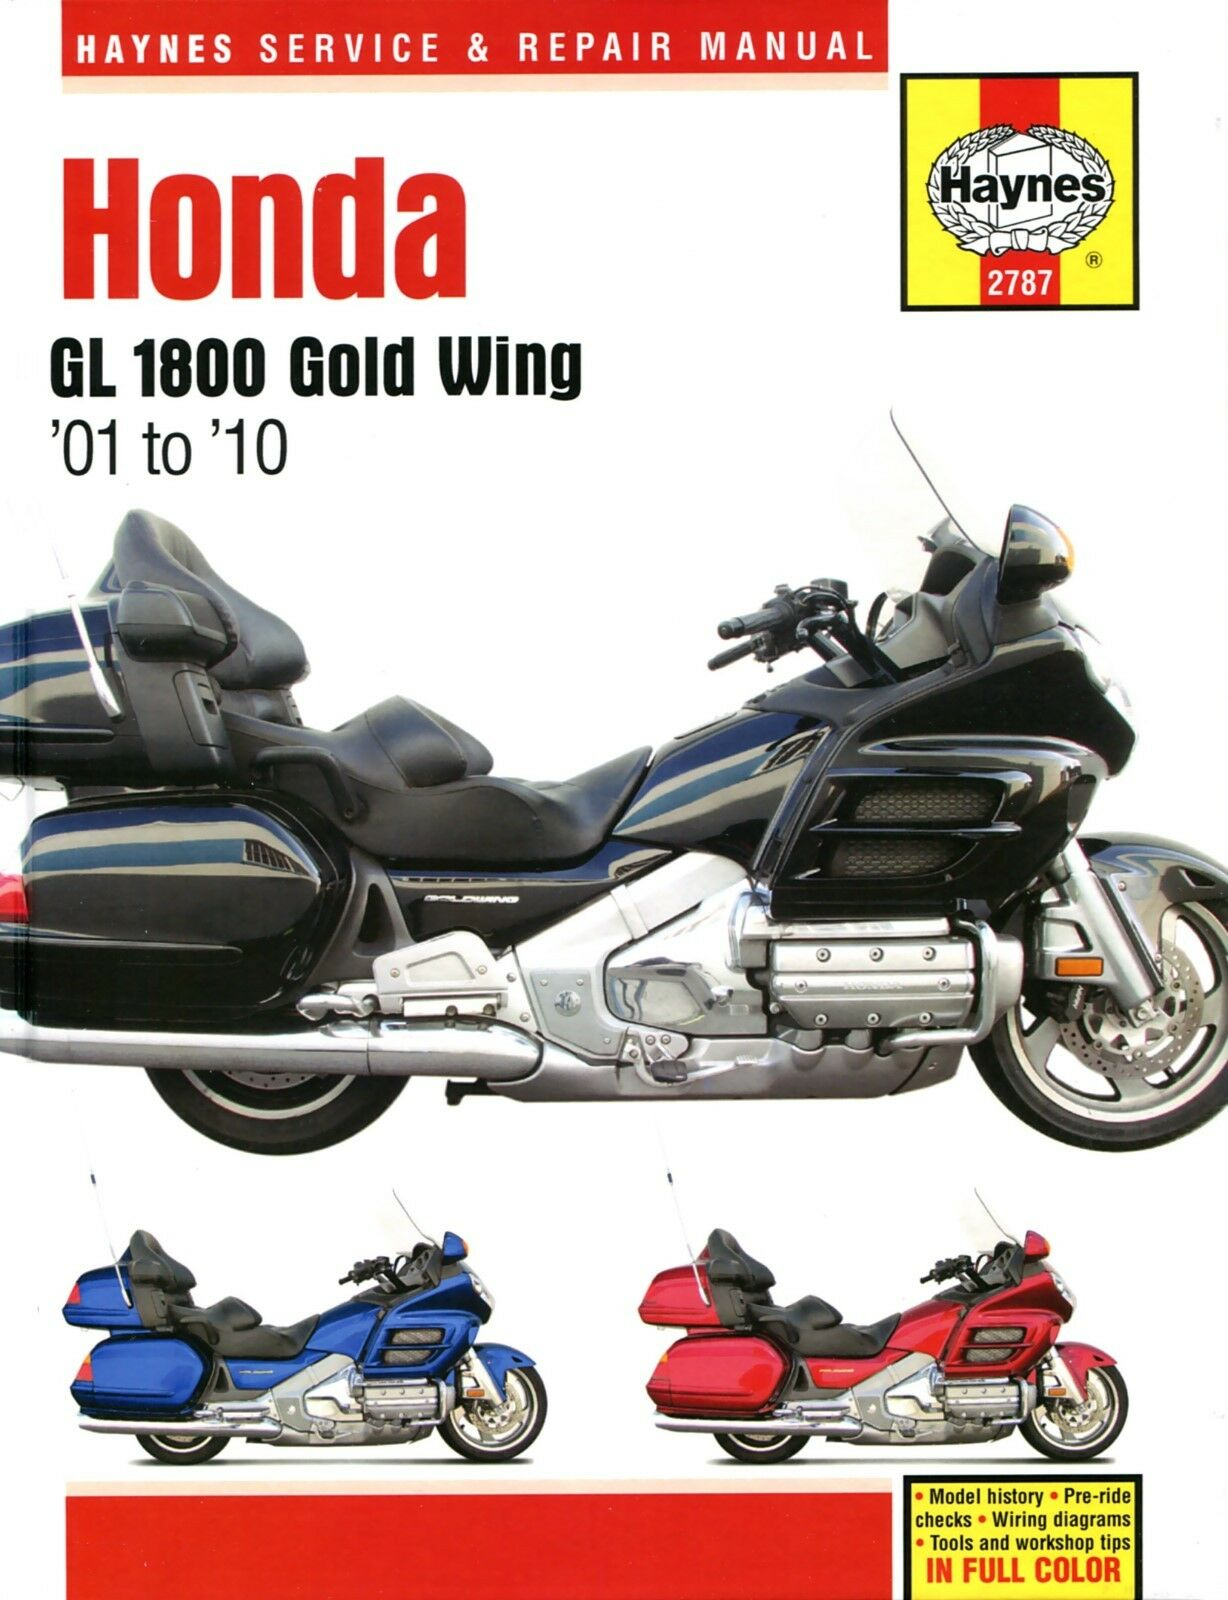 Haynes Manual 2787 Honda Gl1800 Gold Wing 1800 01 10 Workshop 1200 Goldwing Wiring Diagram For 1 Of 1free Shipping